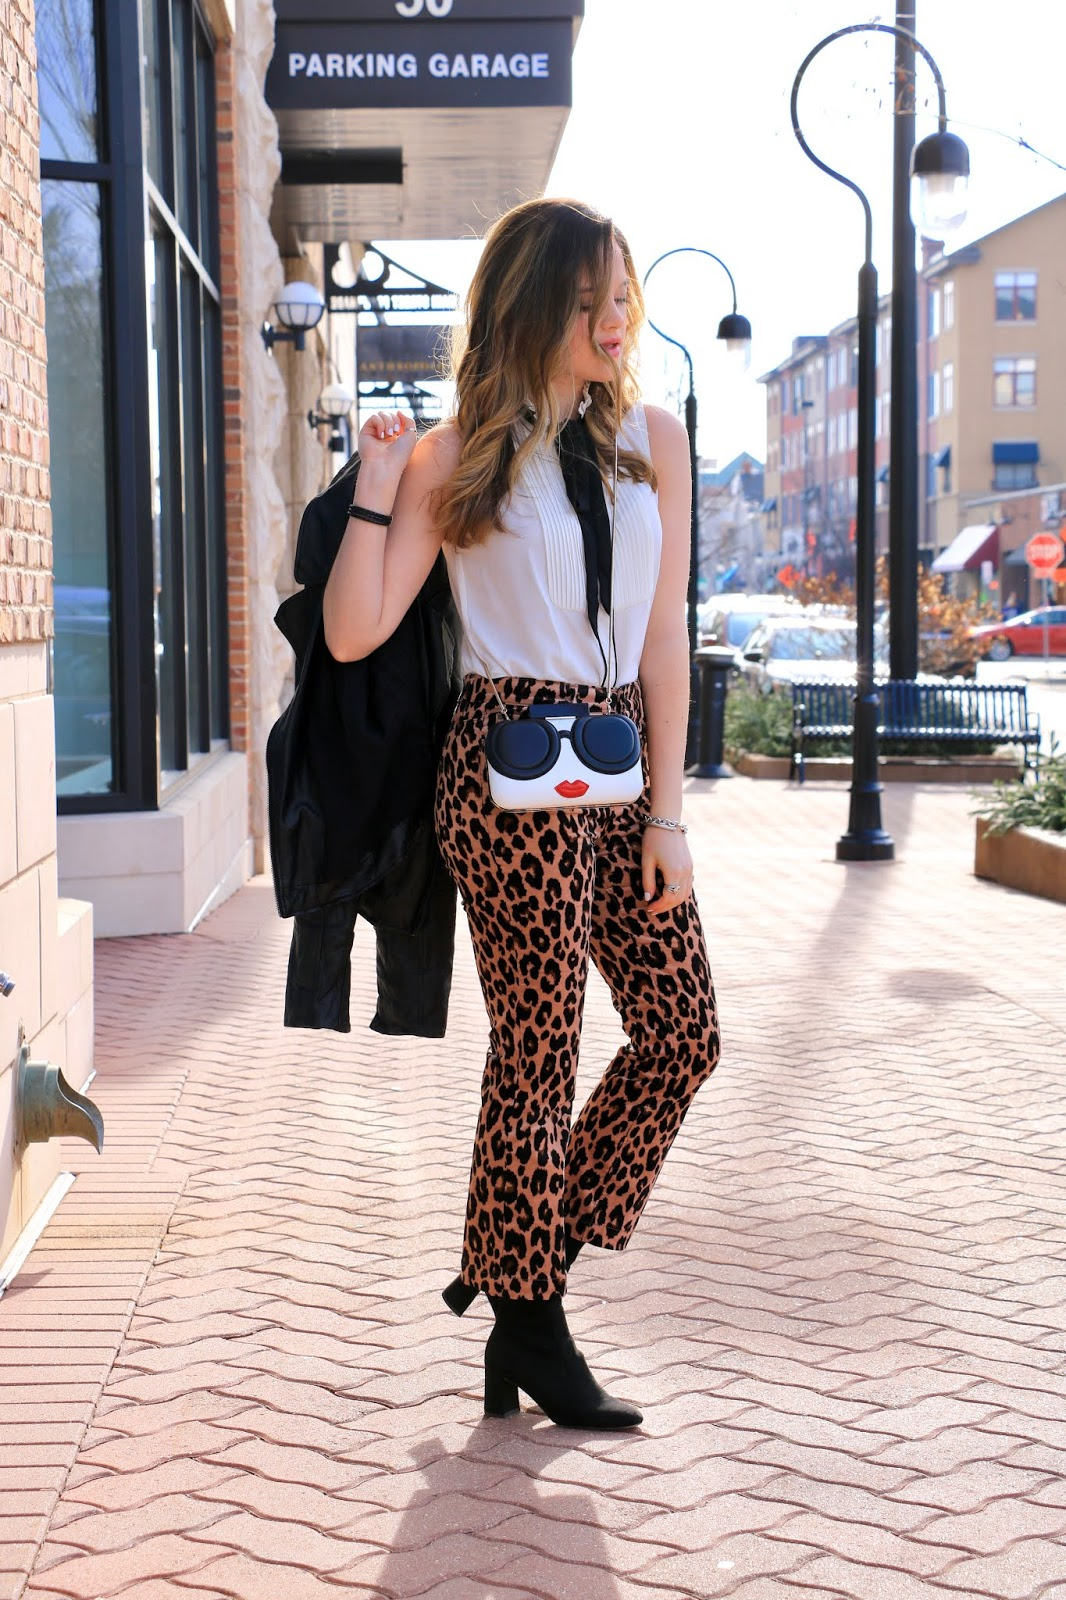 Nyc fashion blogger Kathleen Harper's 2019 spring outfit ideas